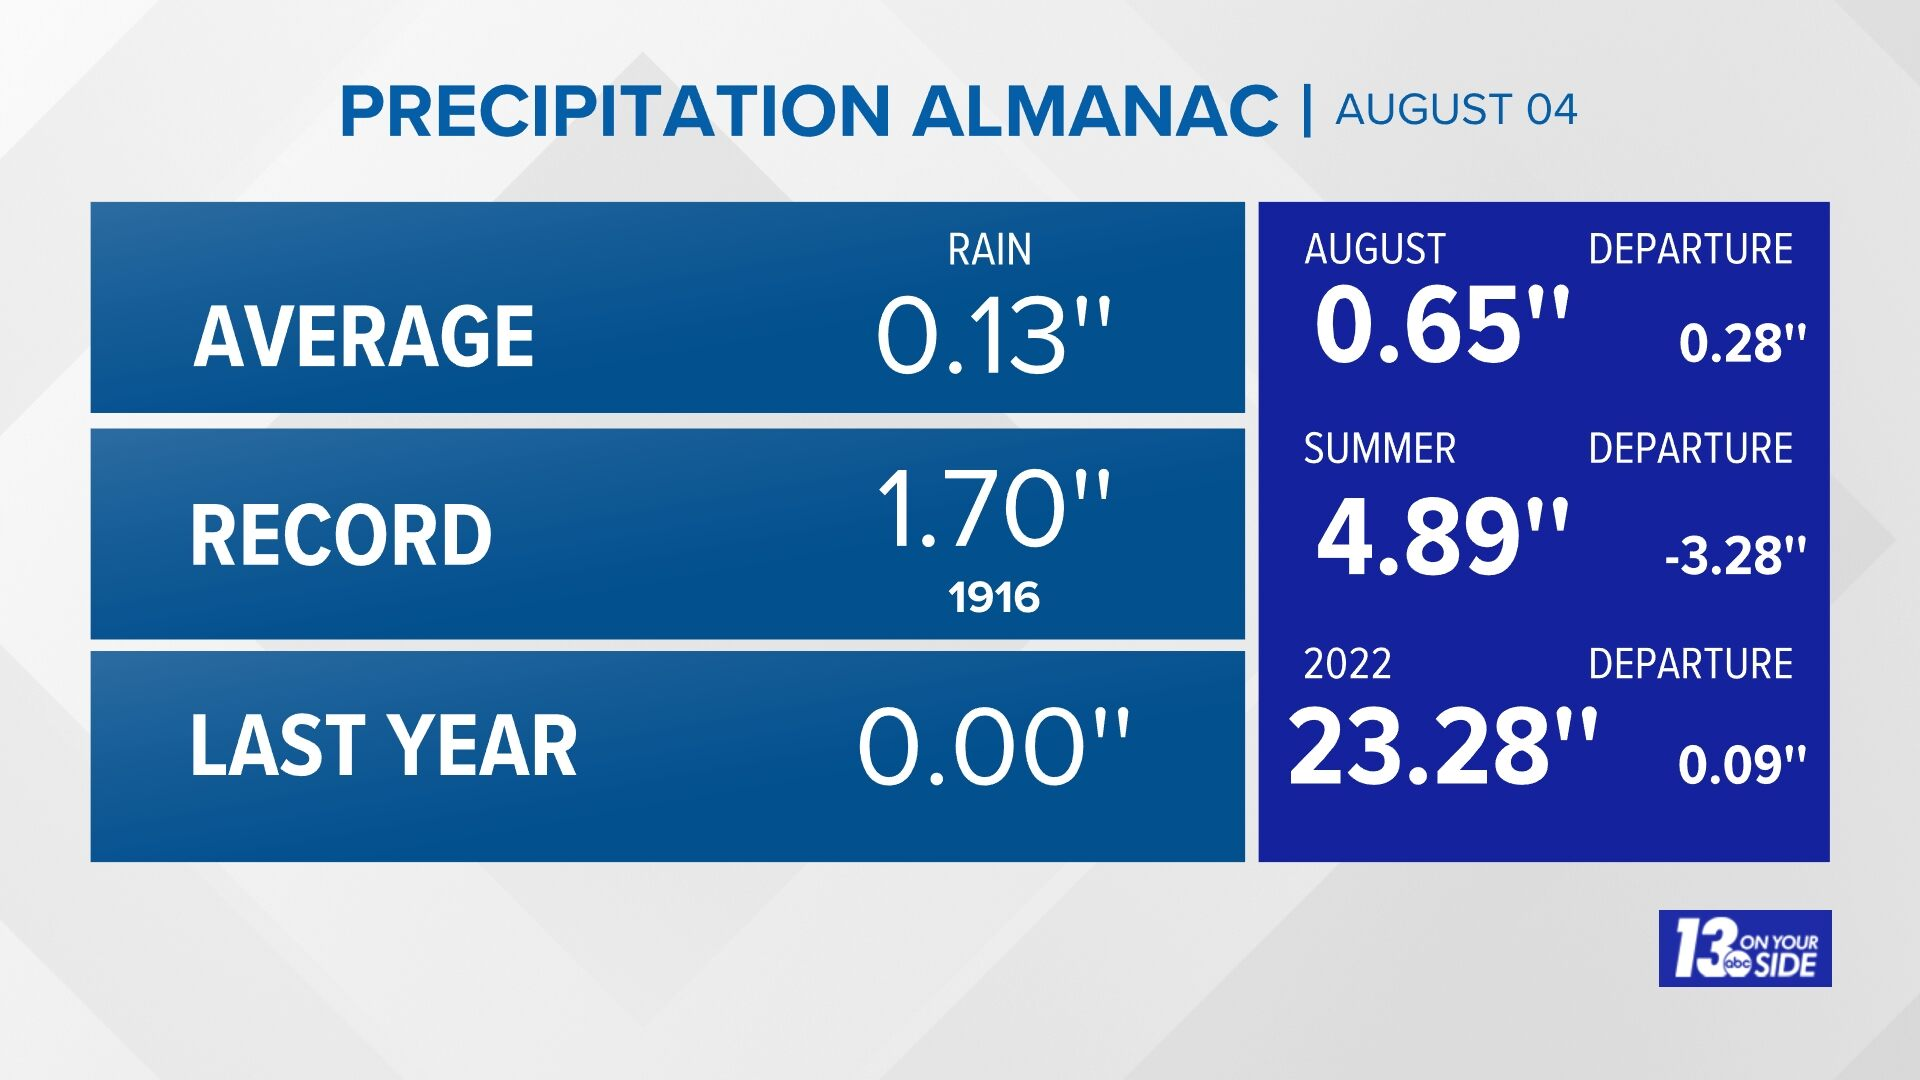 Grand Rapids Almanac Precipitation